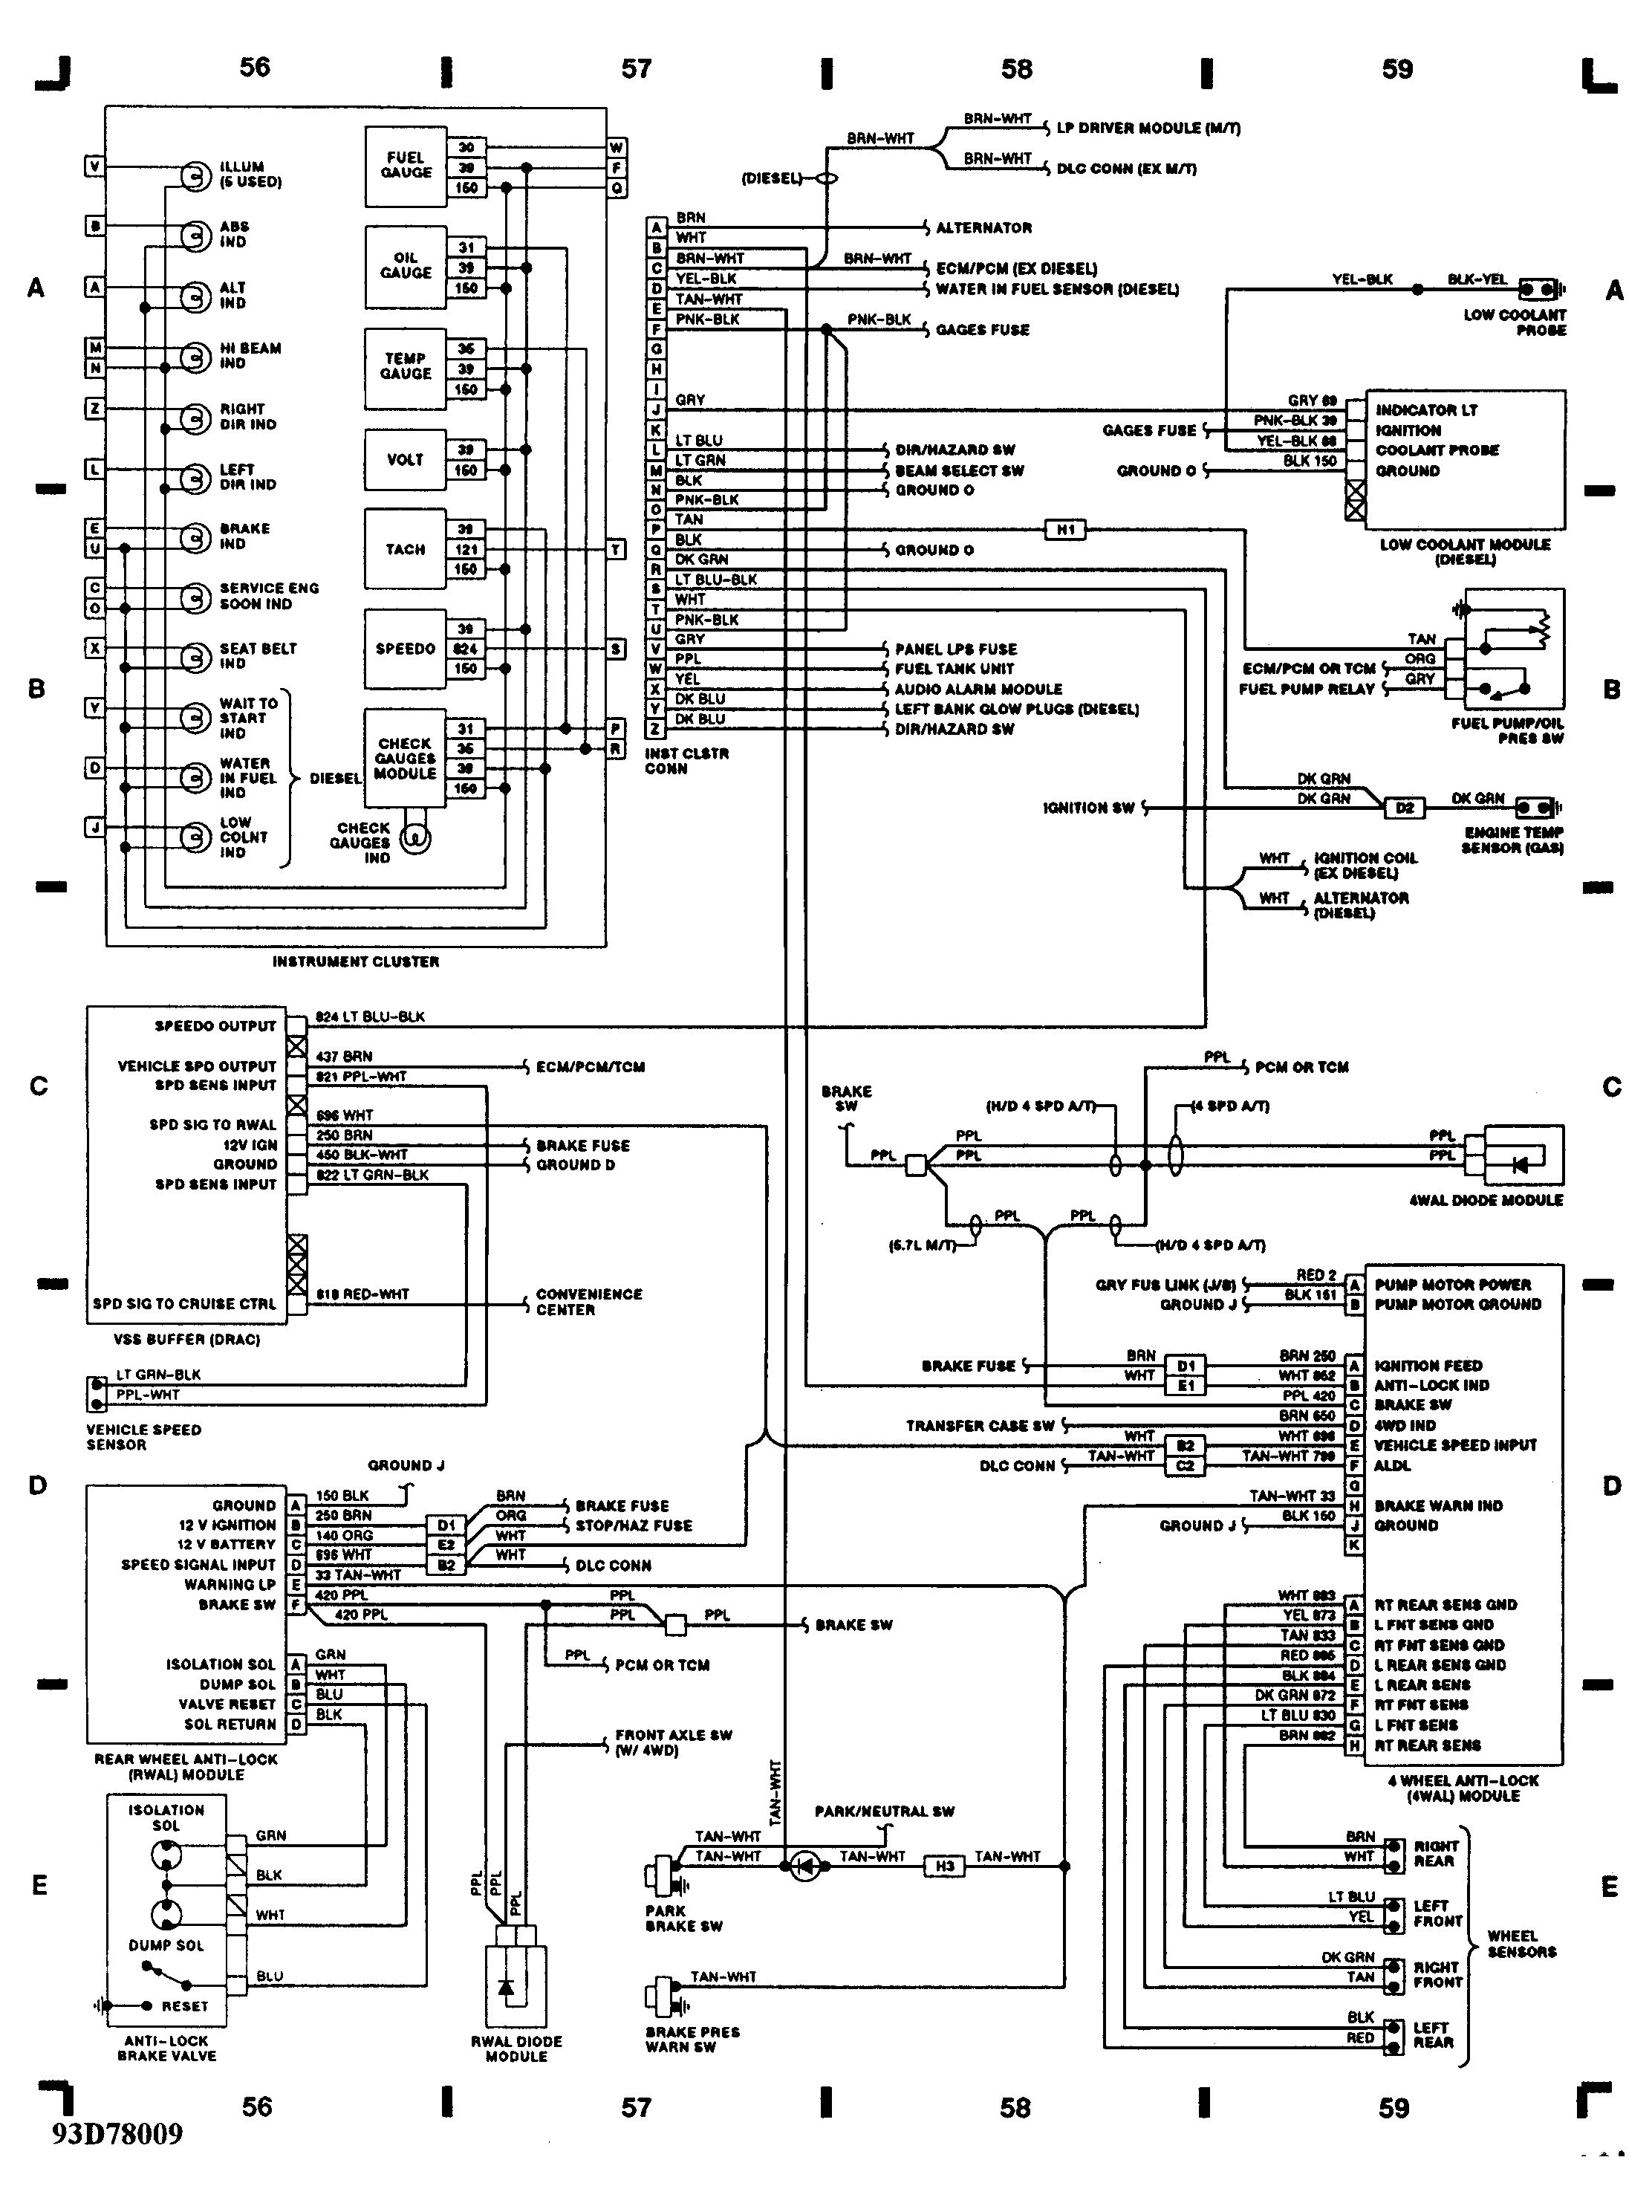 1 3l engine diagram wiring diagram completed 1 3l engine diagram wiring diagram toolbox 1 3l engine diagram